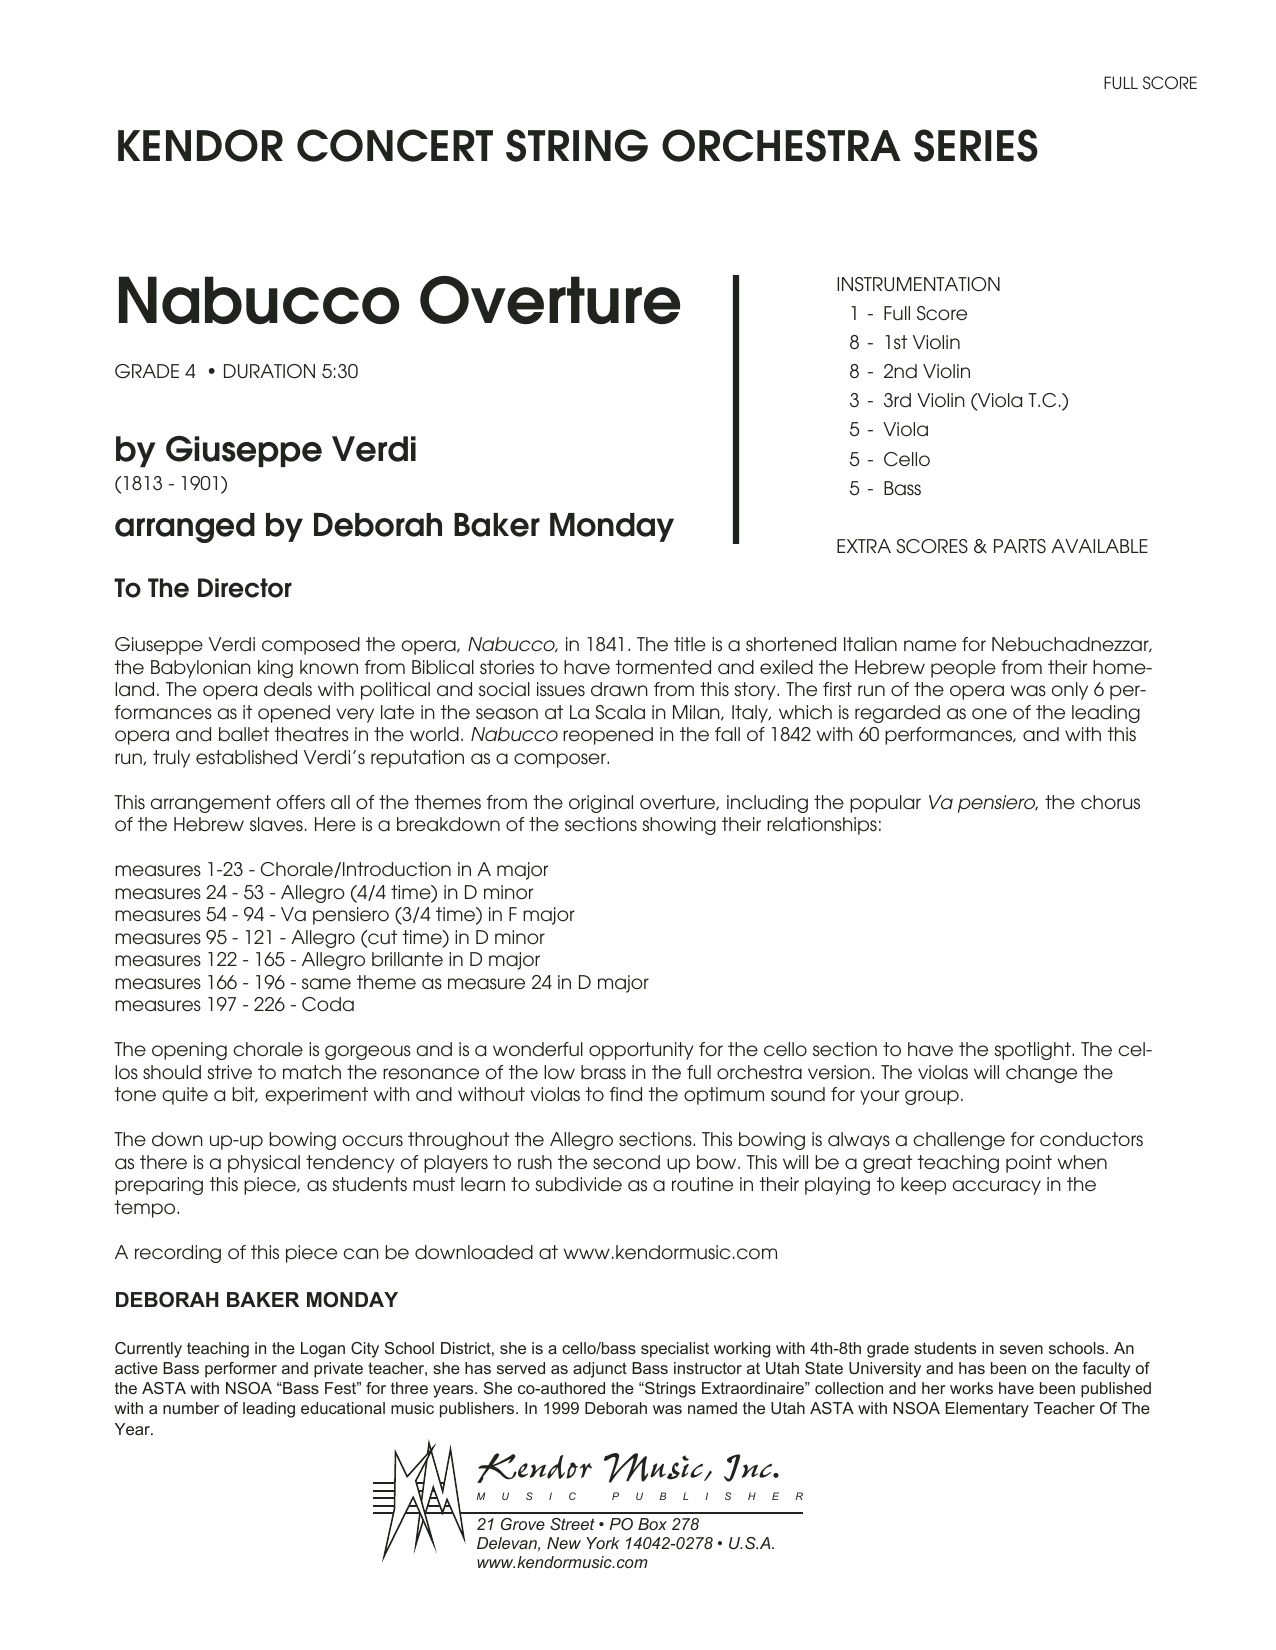 Nabucco Overture (COMPLETE) sheet music for orchestra by Deborah Baker Monday and Giuseppe Verdi. Score Image Preview.